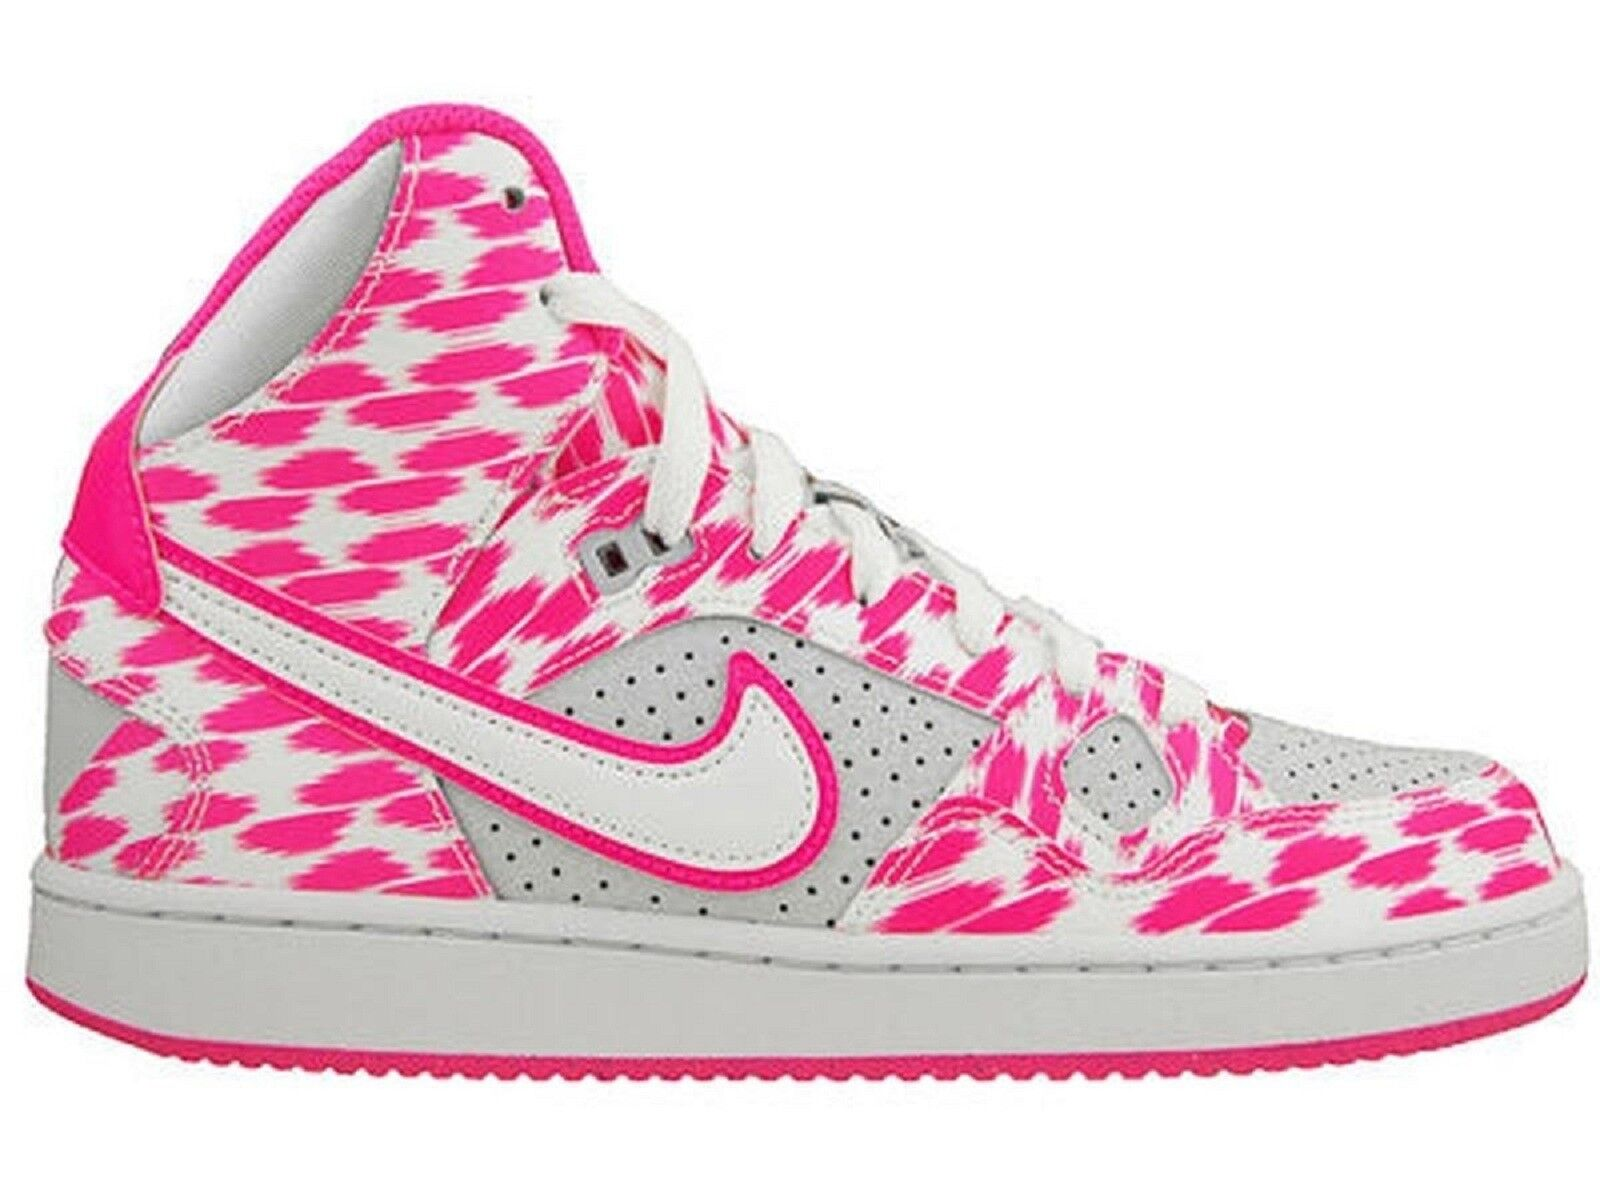 NIKE SON OF FORCE MID 001 PRINT GS Damenschuhe 725138 001 MID WEISS PINK woman bianco rosa 82eb0d